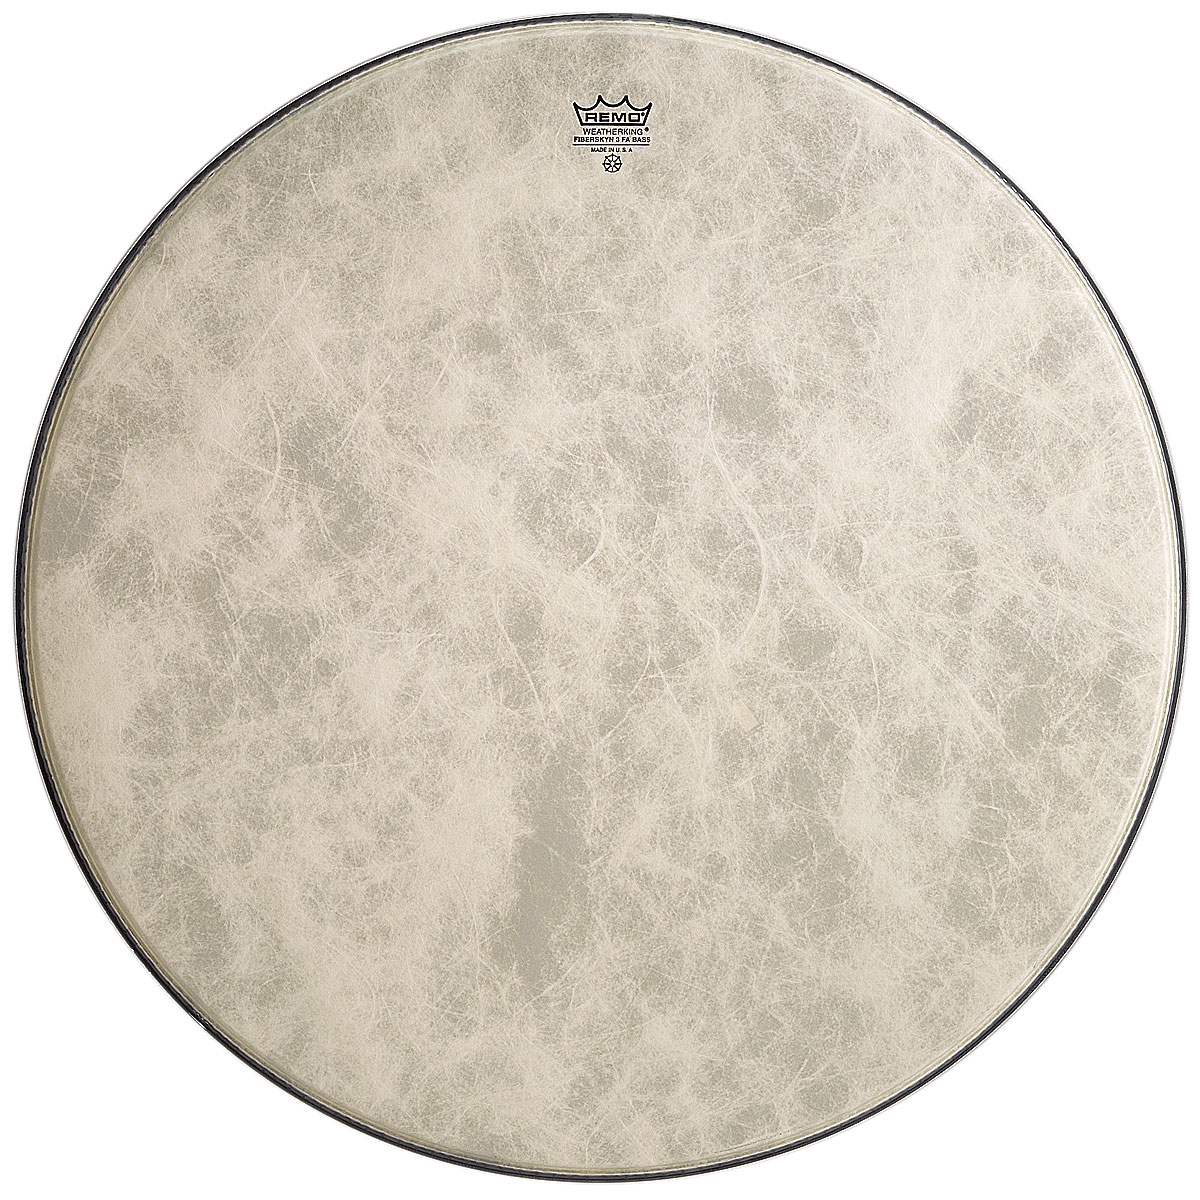 "Remo 16"" Ambassador Fiberskyn Bass Drum Head"